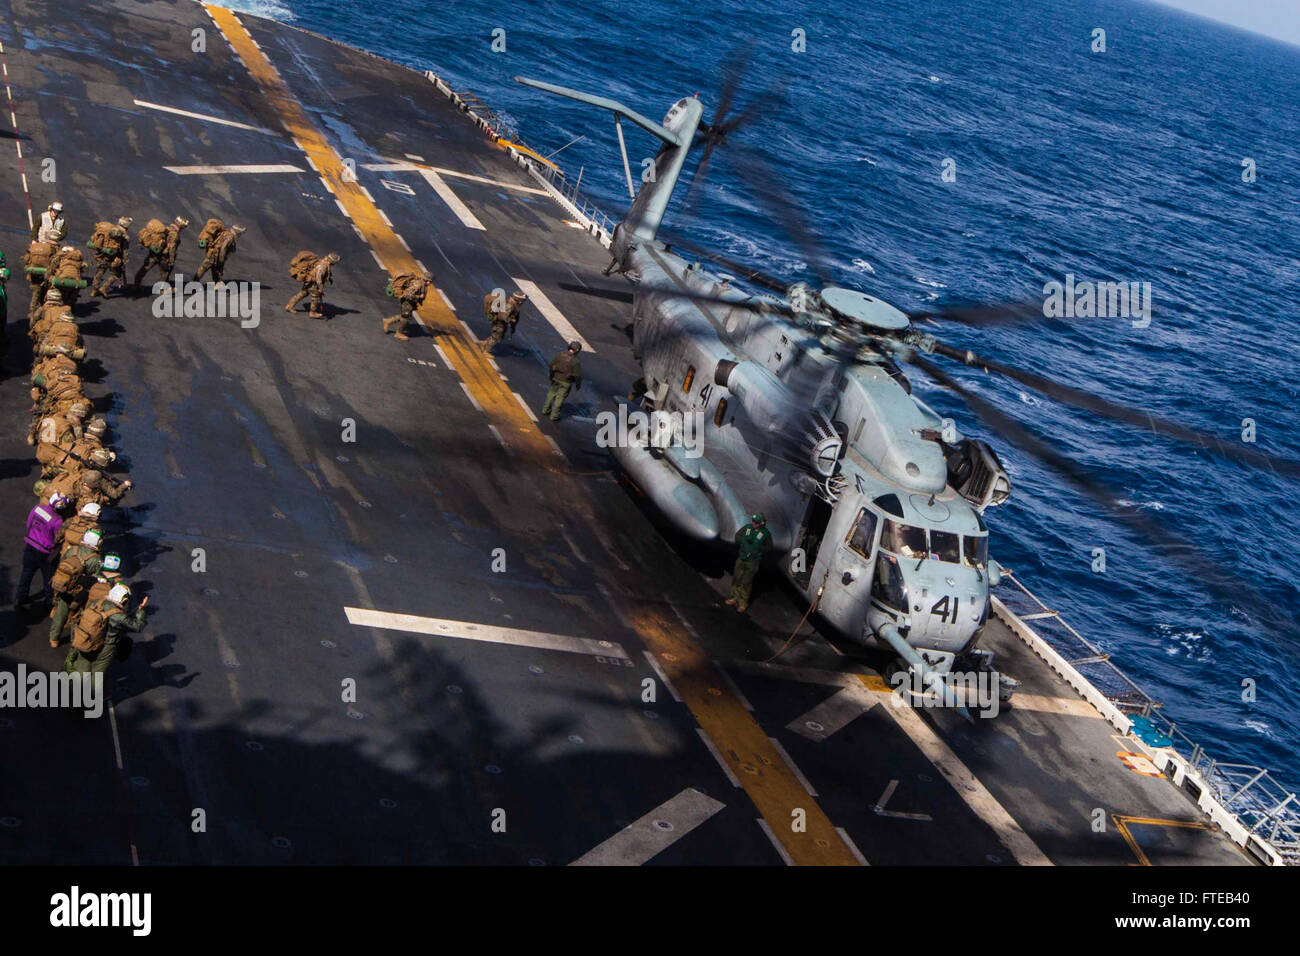 140307-M-HZ646-267: USS BATAAN, at sea (March 7, 2014) - U.S. Marines and Sailors with Battalion Landing Team 1st - Stock Image